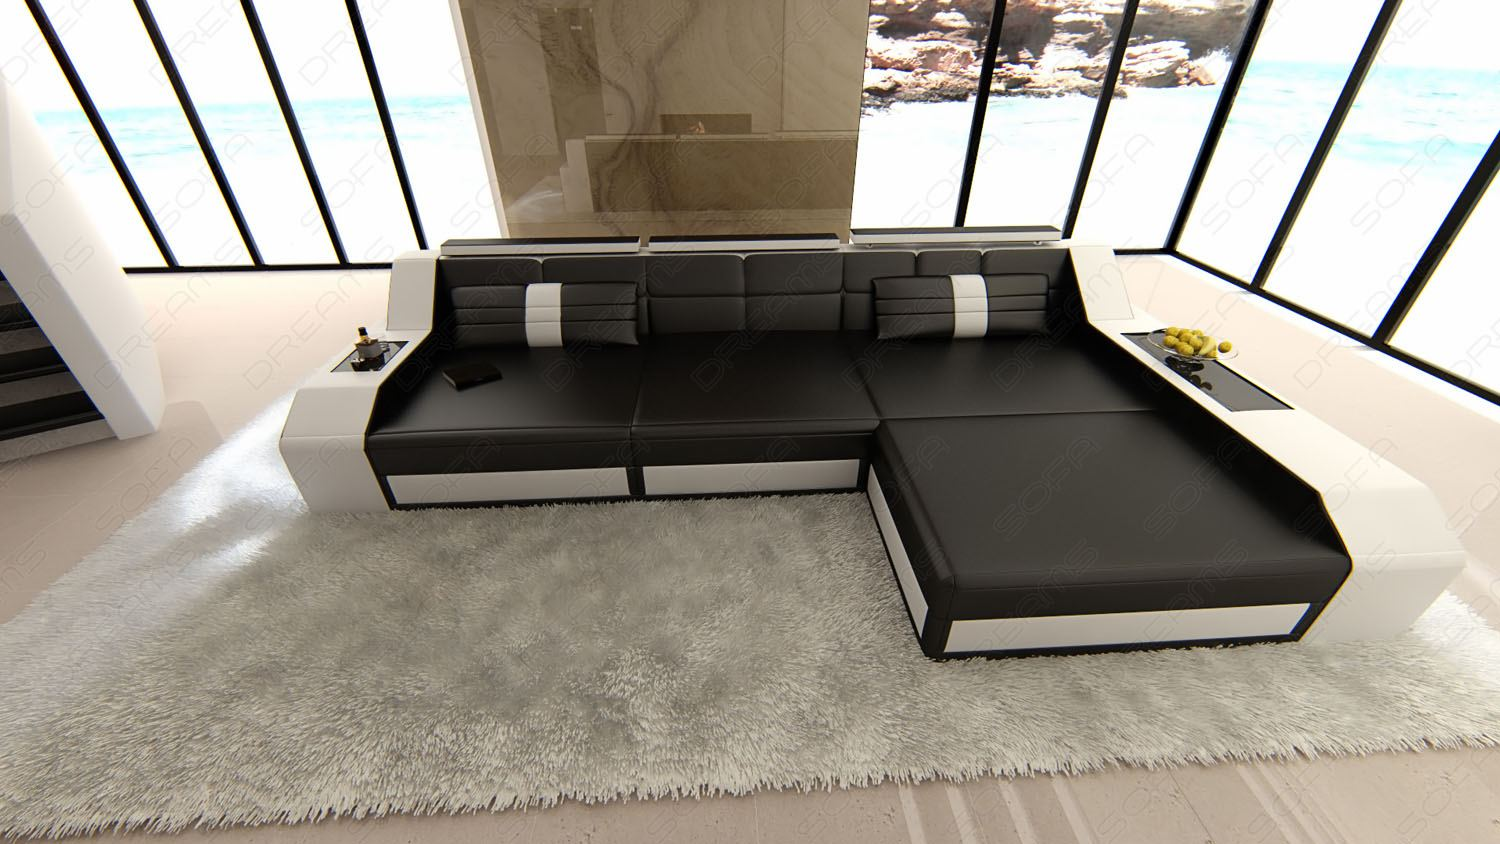 ledersofa arezzo l form eckcouch mit beleuchtung schwarz weiss lagerware ebay. Black Bedroom Furniture Sets. Home Design Ideas